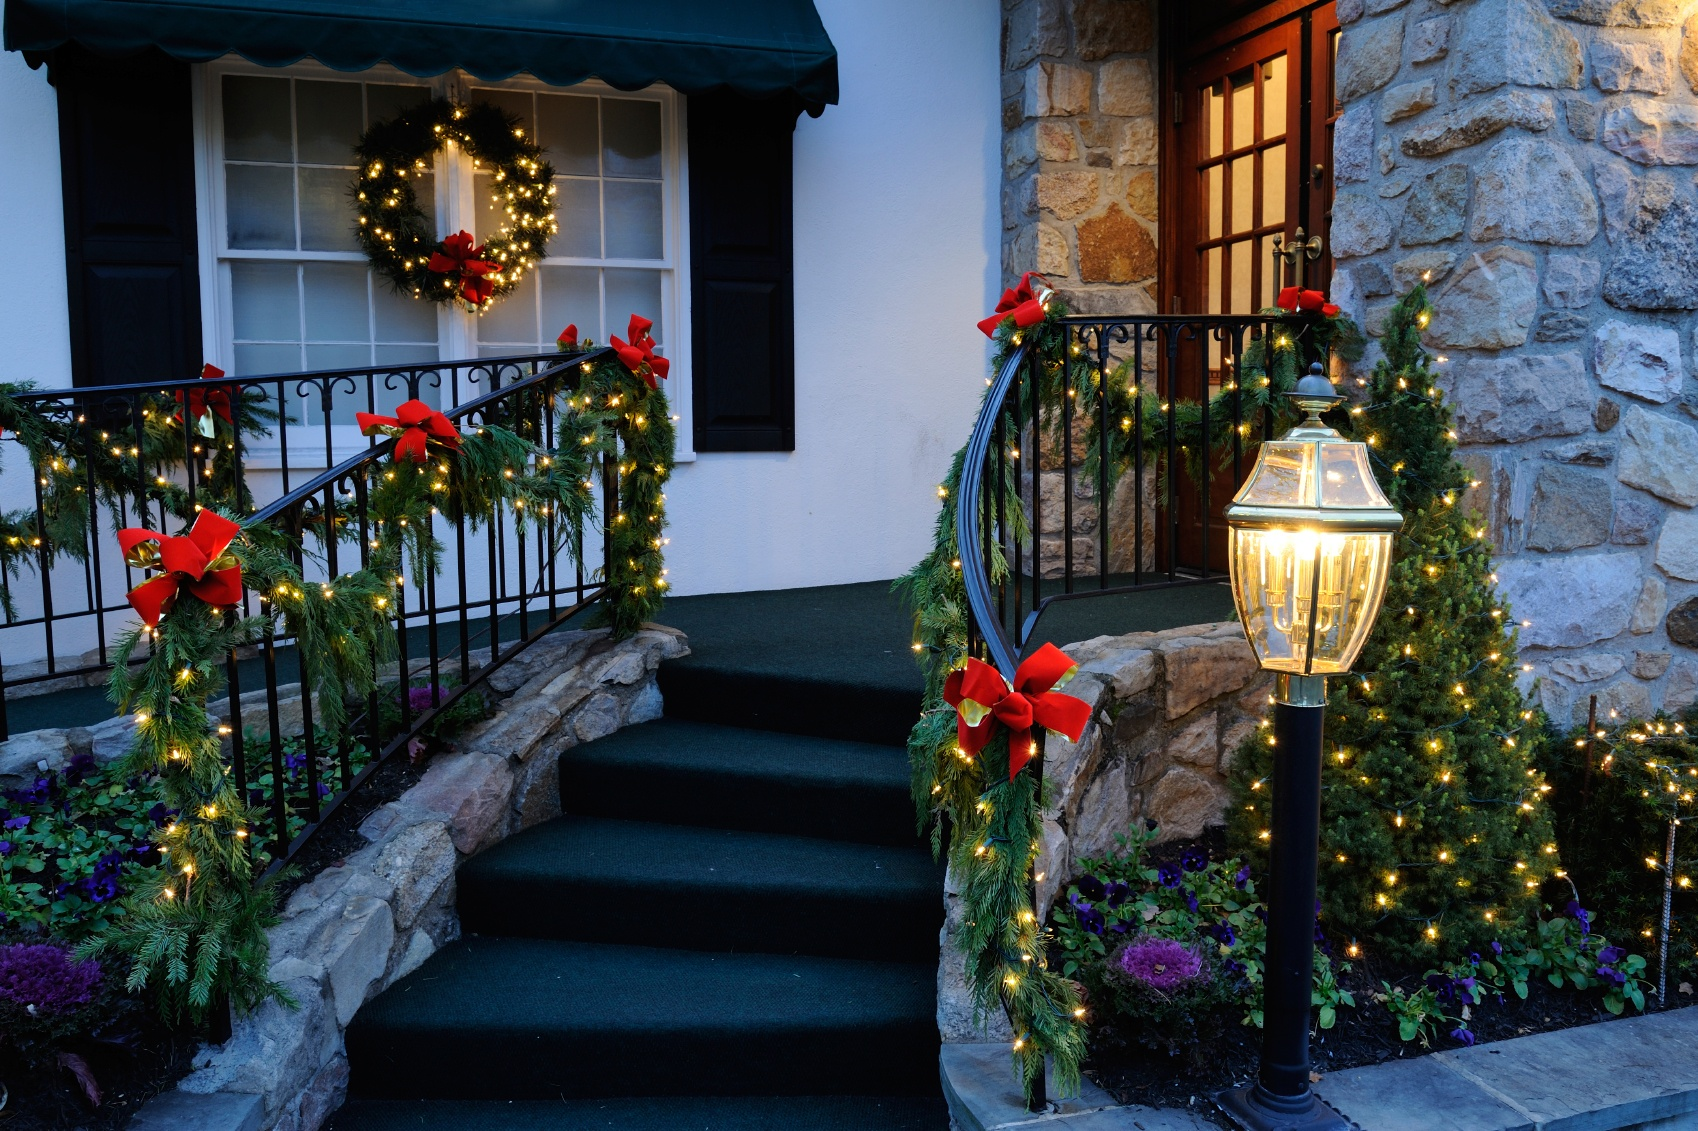 Lighted garland and red bows create a classic Christmas porch!